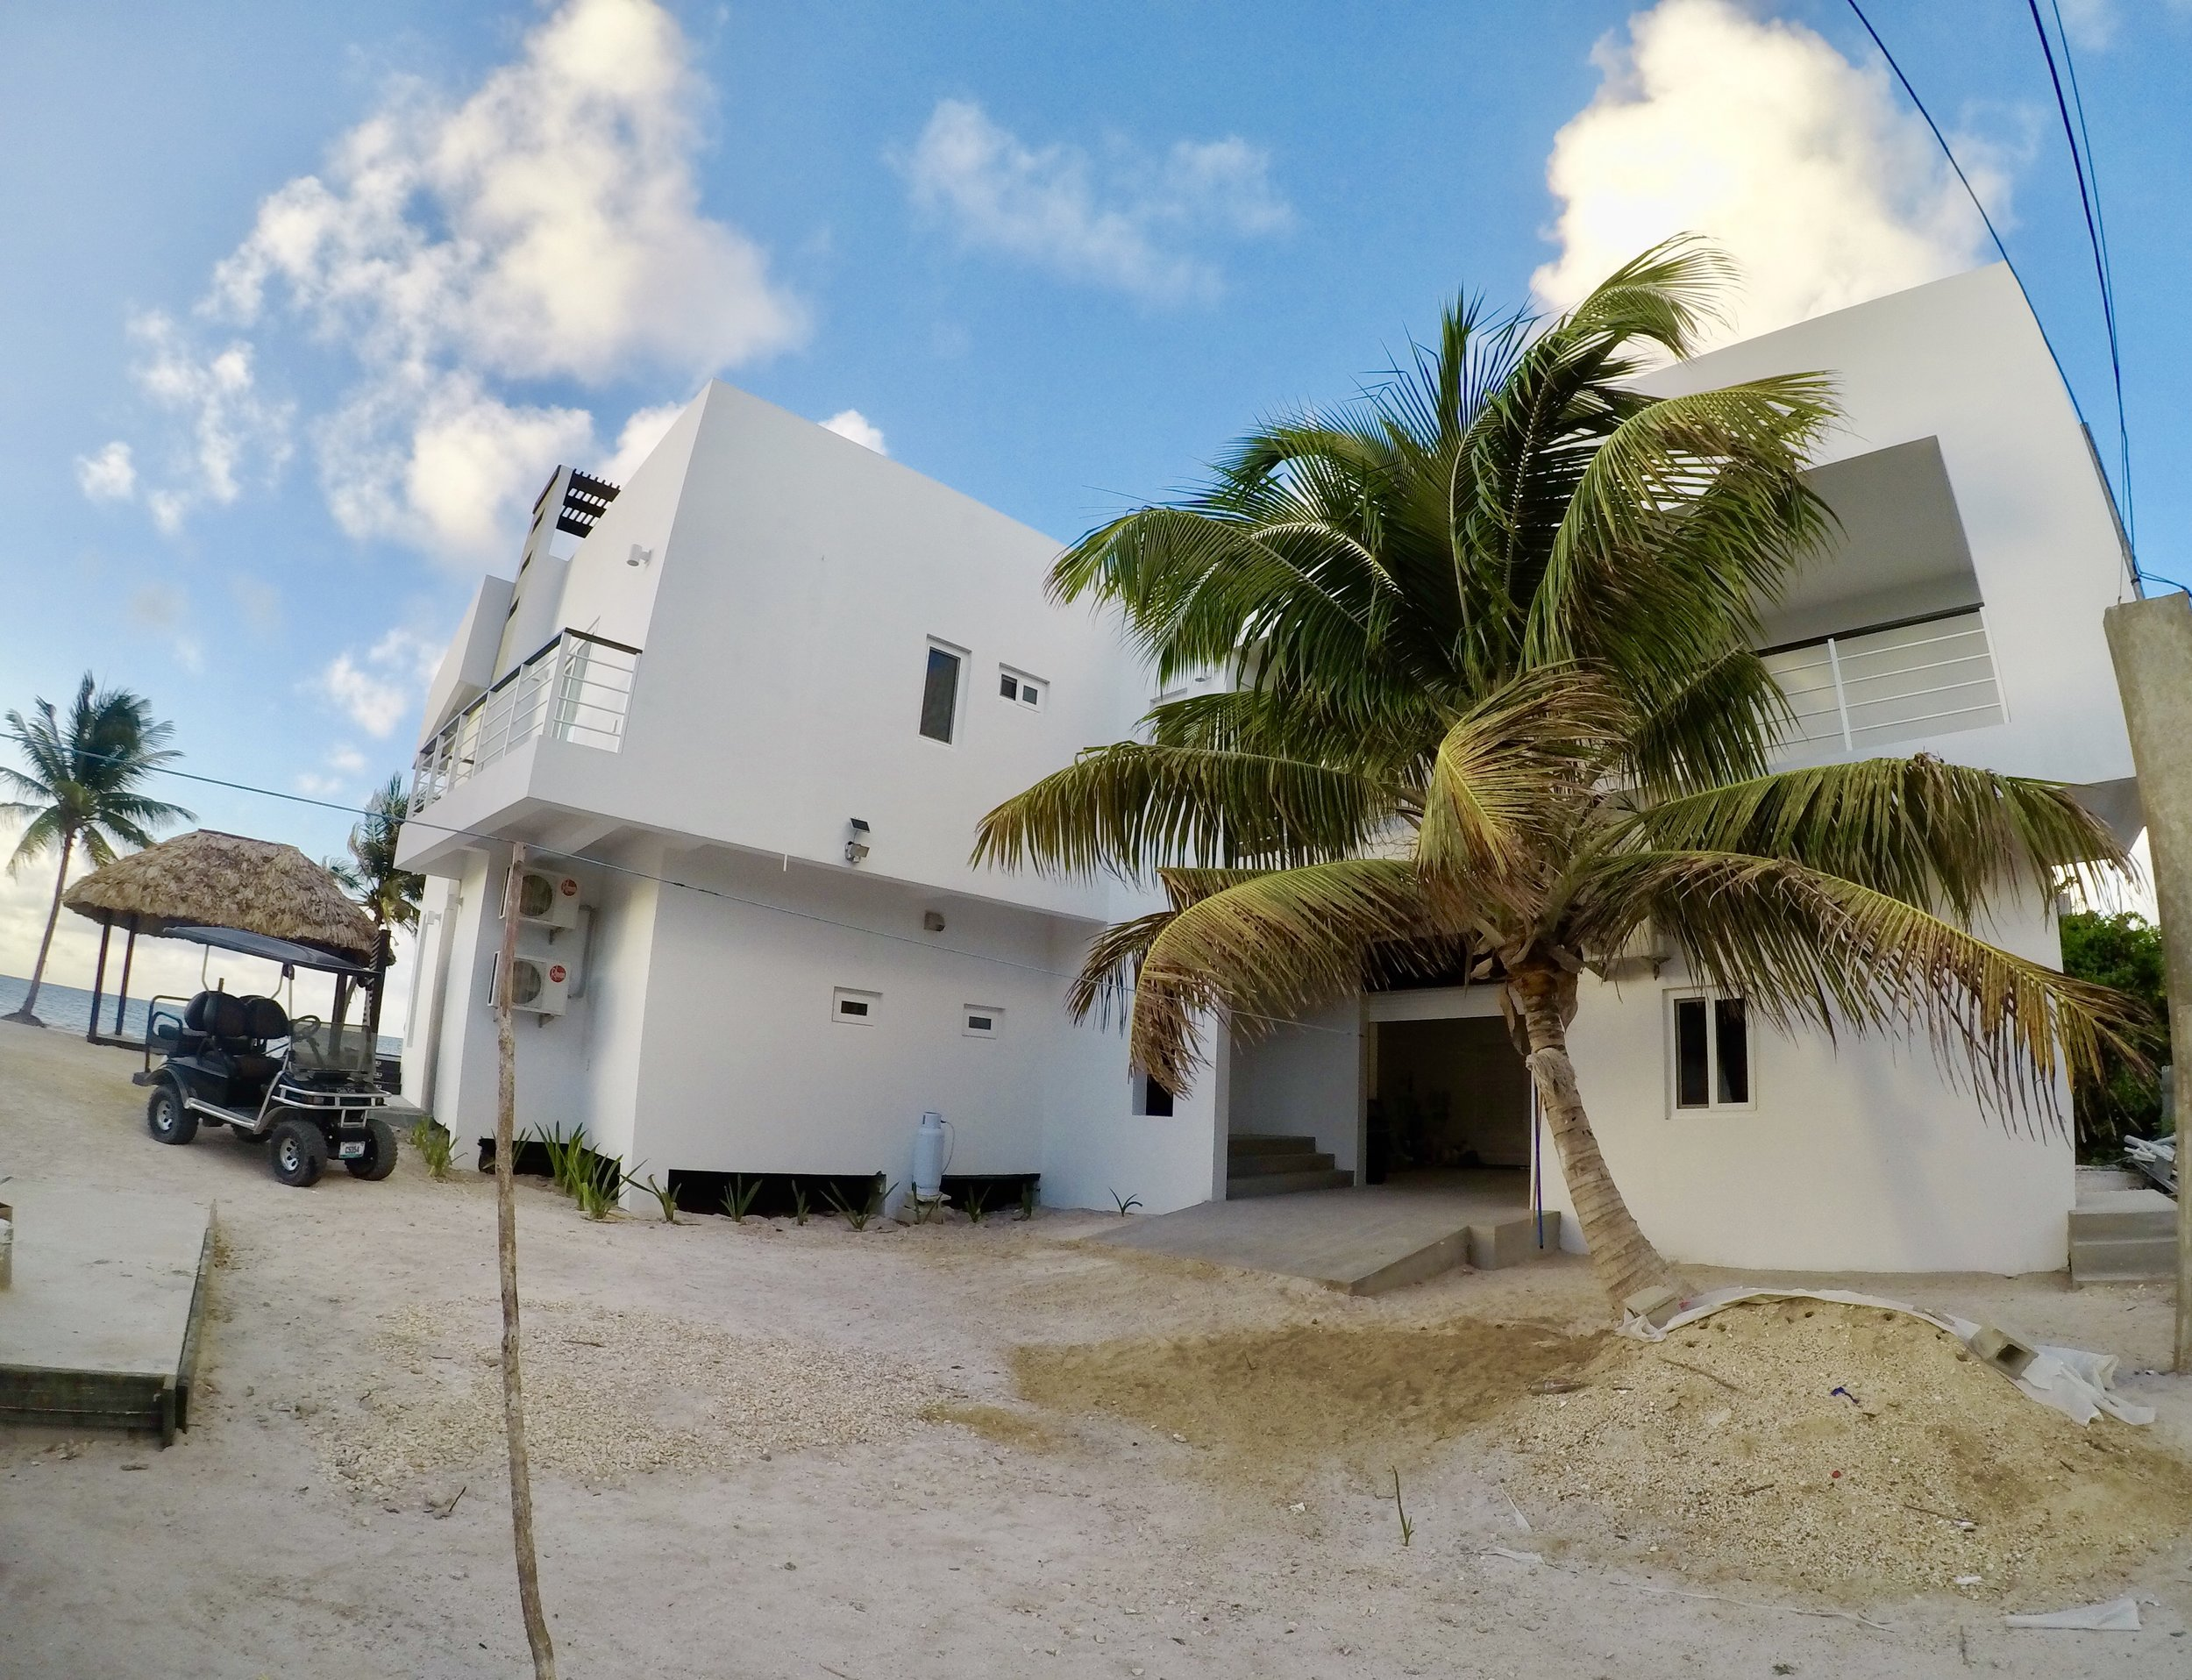 Third Coast Belize Driveway Entry Belize Vacation Rental.jpg